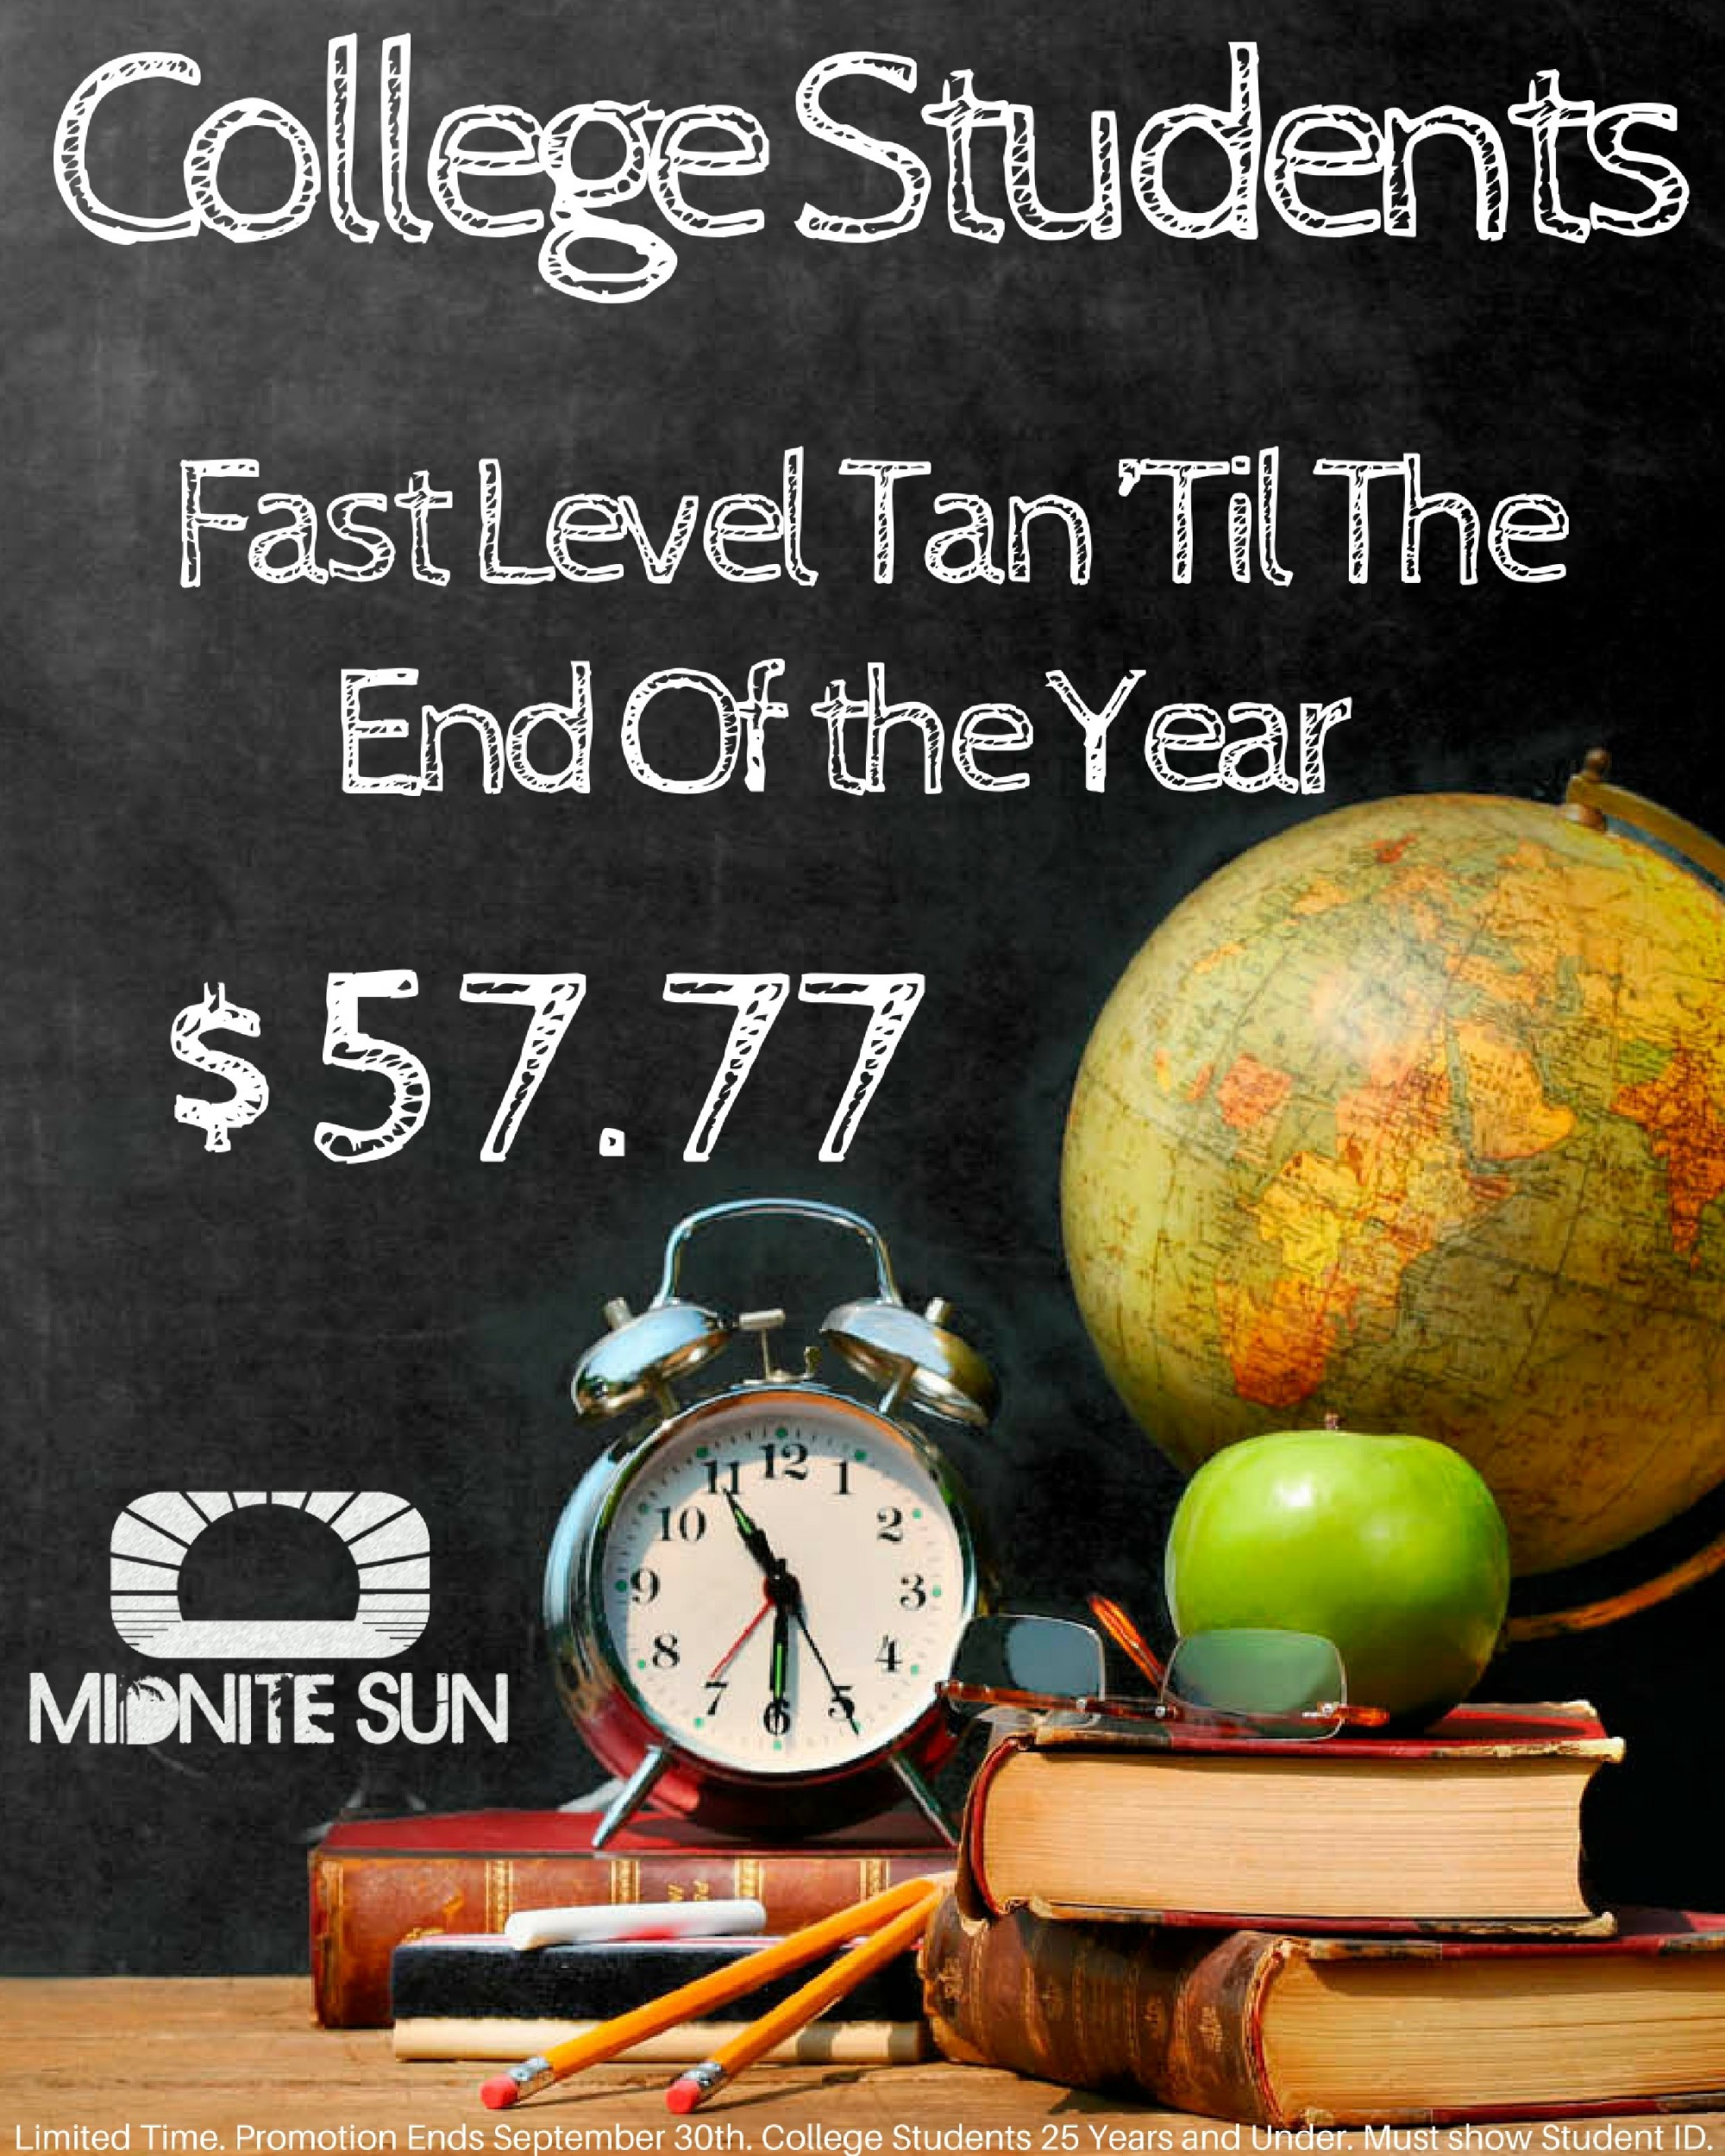 College Students can purchase a Tan 'Til The End Of the Year Fast Membership for $57.77!